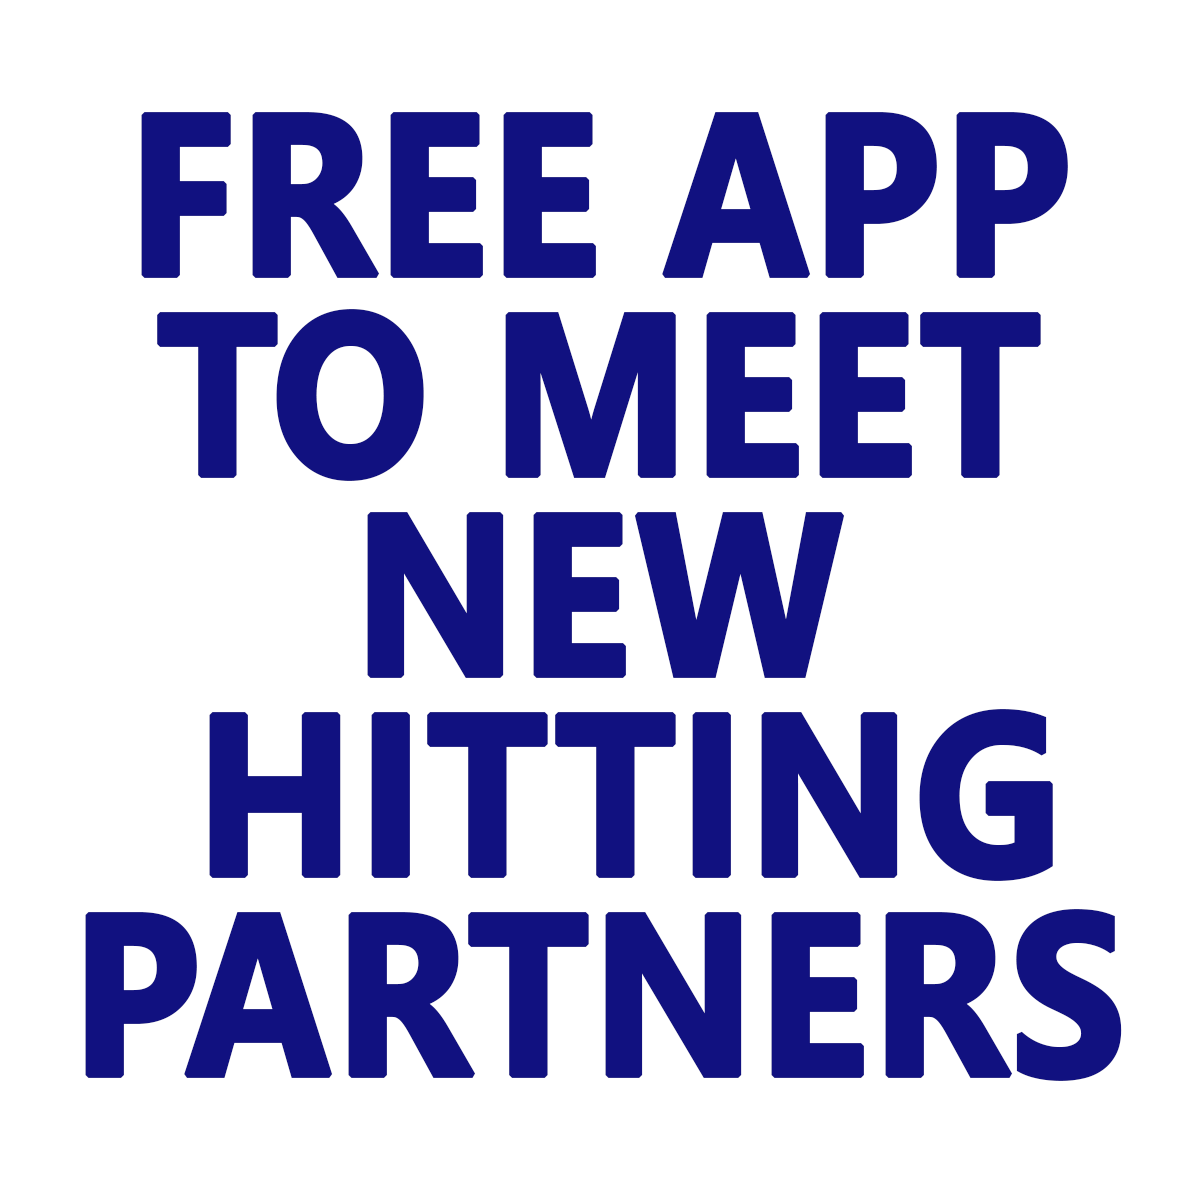 Tennis World Team NYC Free App.png